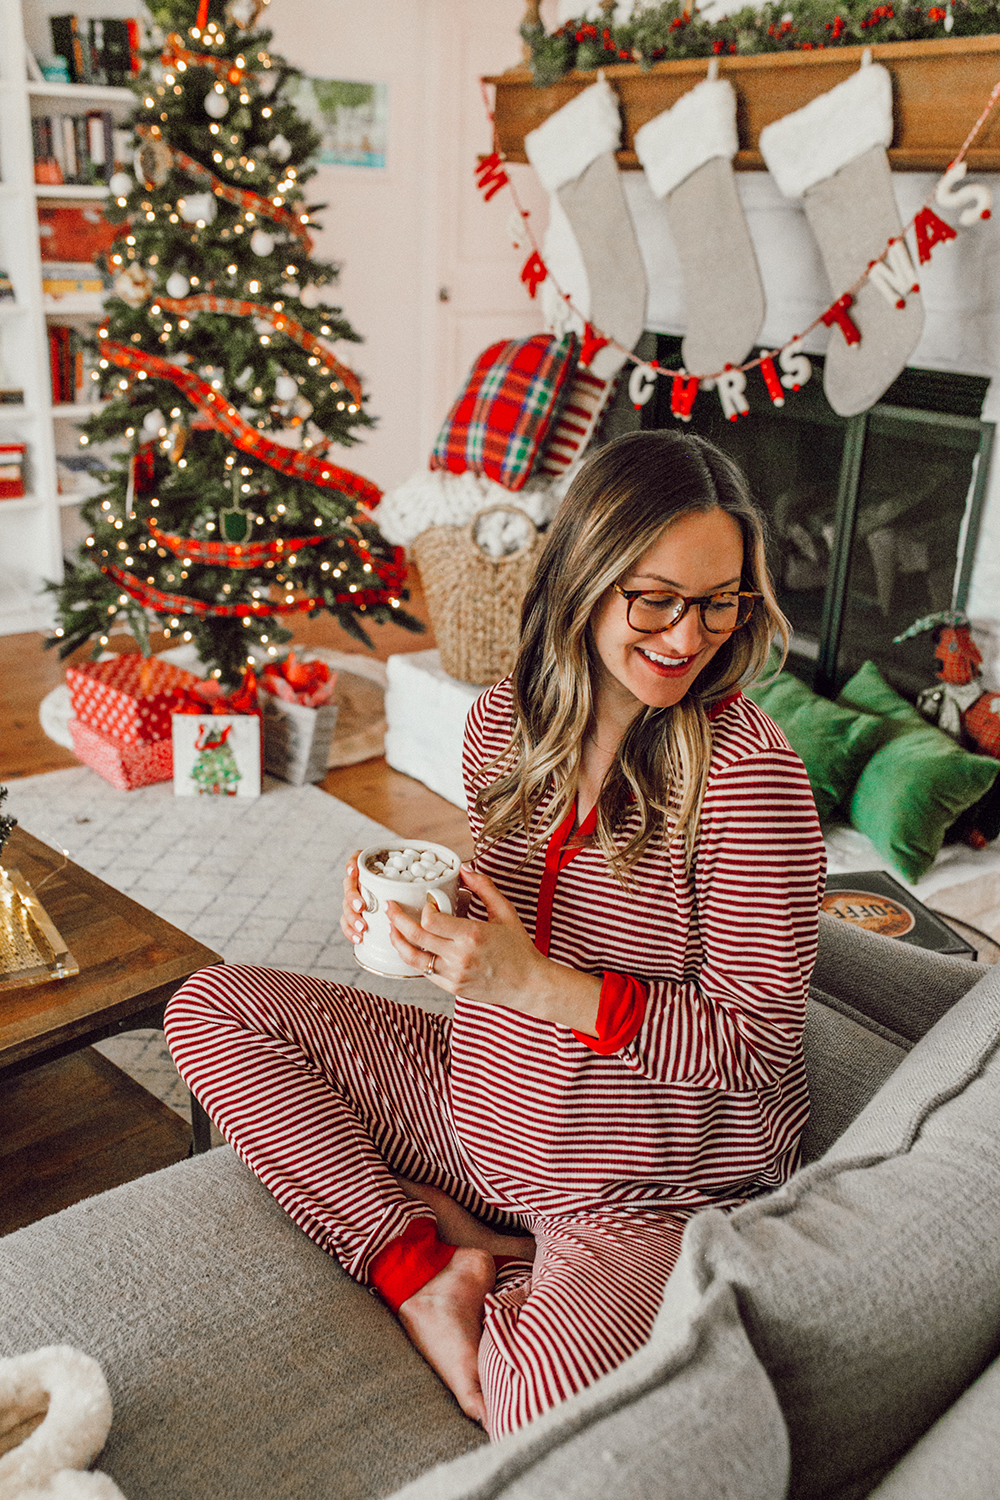 livvyland-blog-olivia-watson-austin-texas-fashion-lifestyle-blogger-maternity-christmas-holiday-striped-pajamas-jockey-5